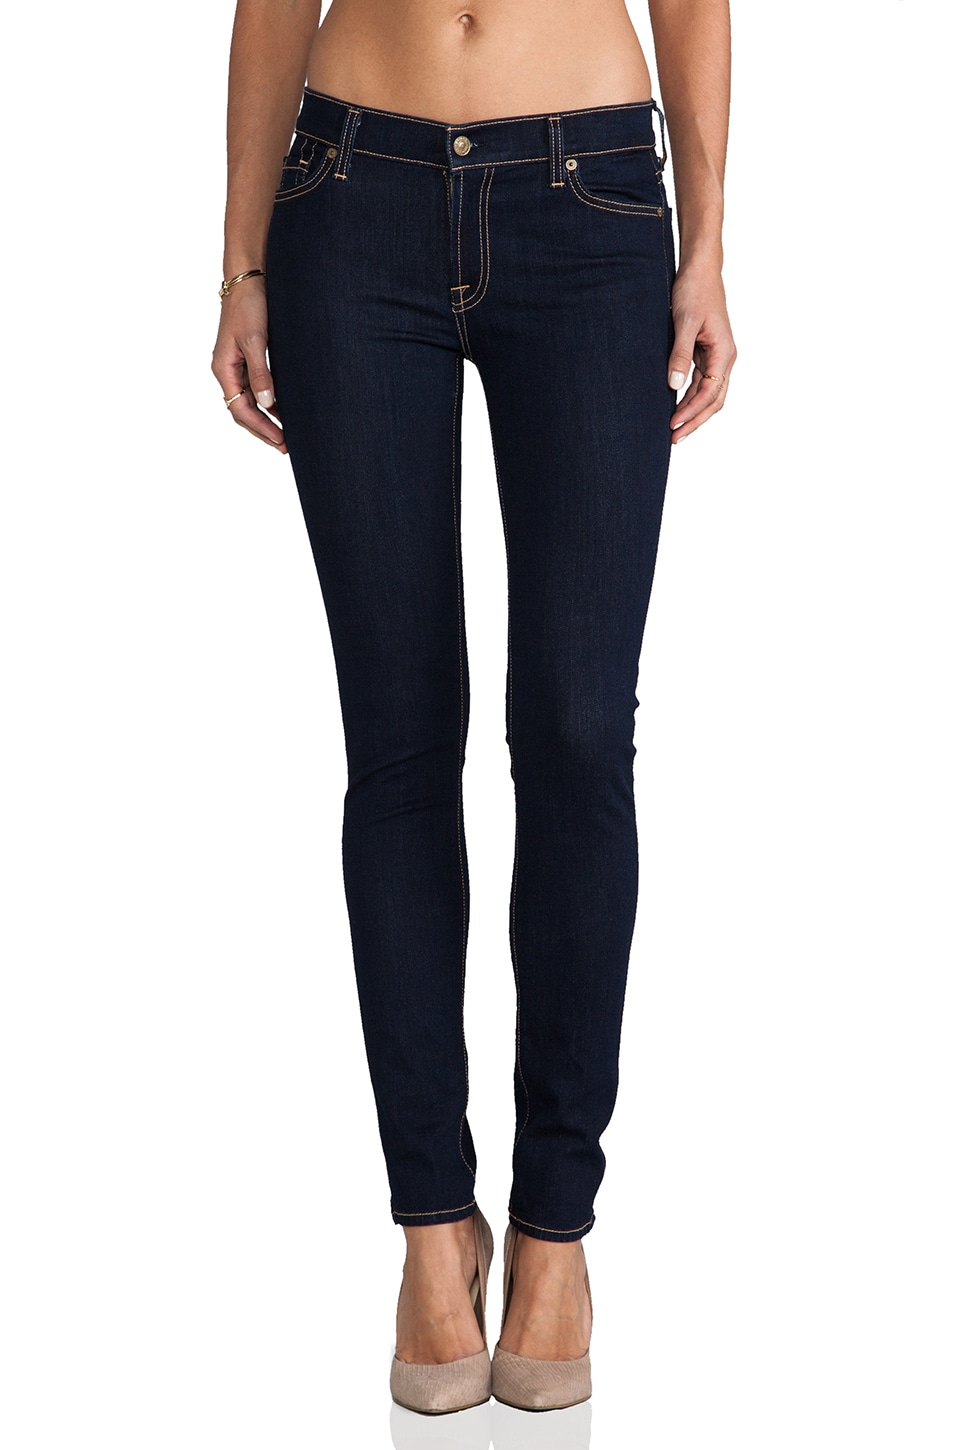 7 For All Mankind The Skinny in Rinsed Indigo